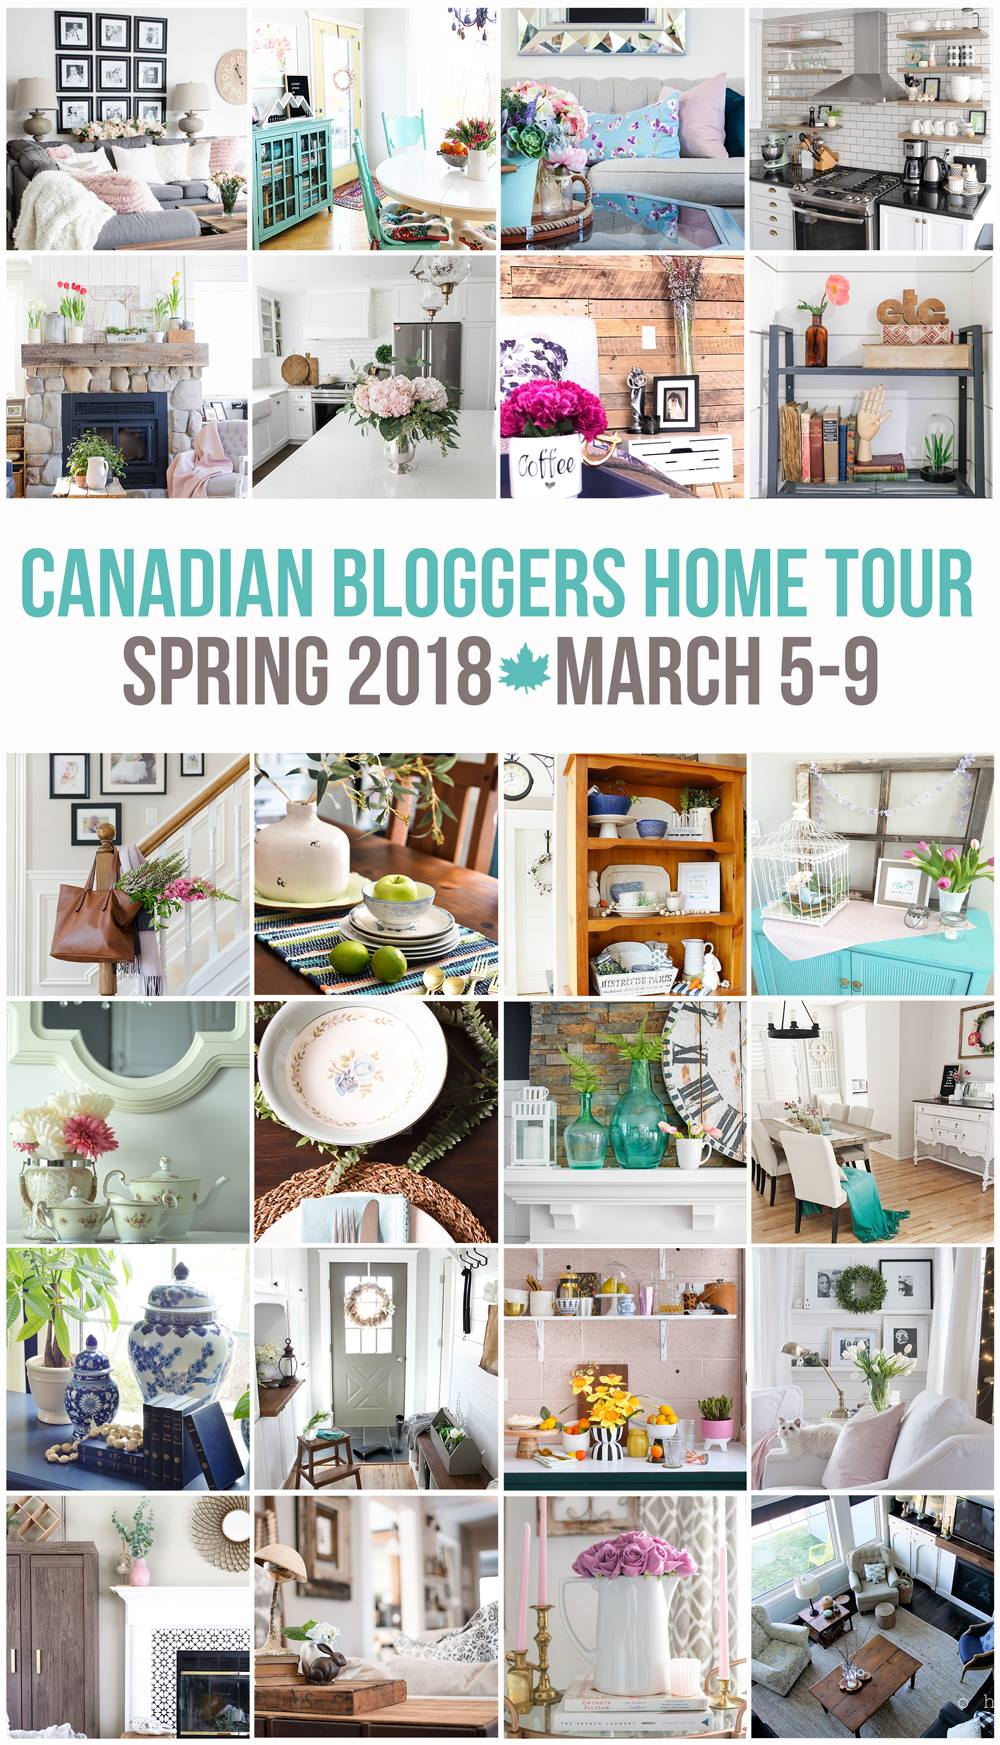 Canadian BLoggers Spring 2018 Home Tour